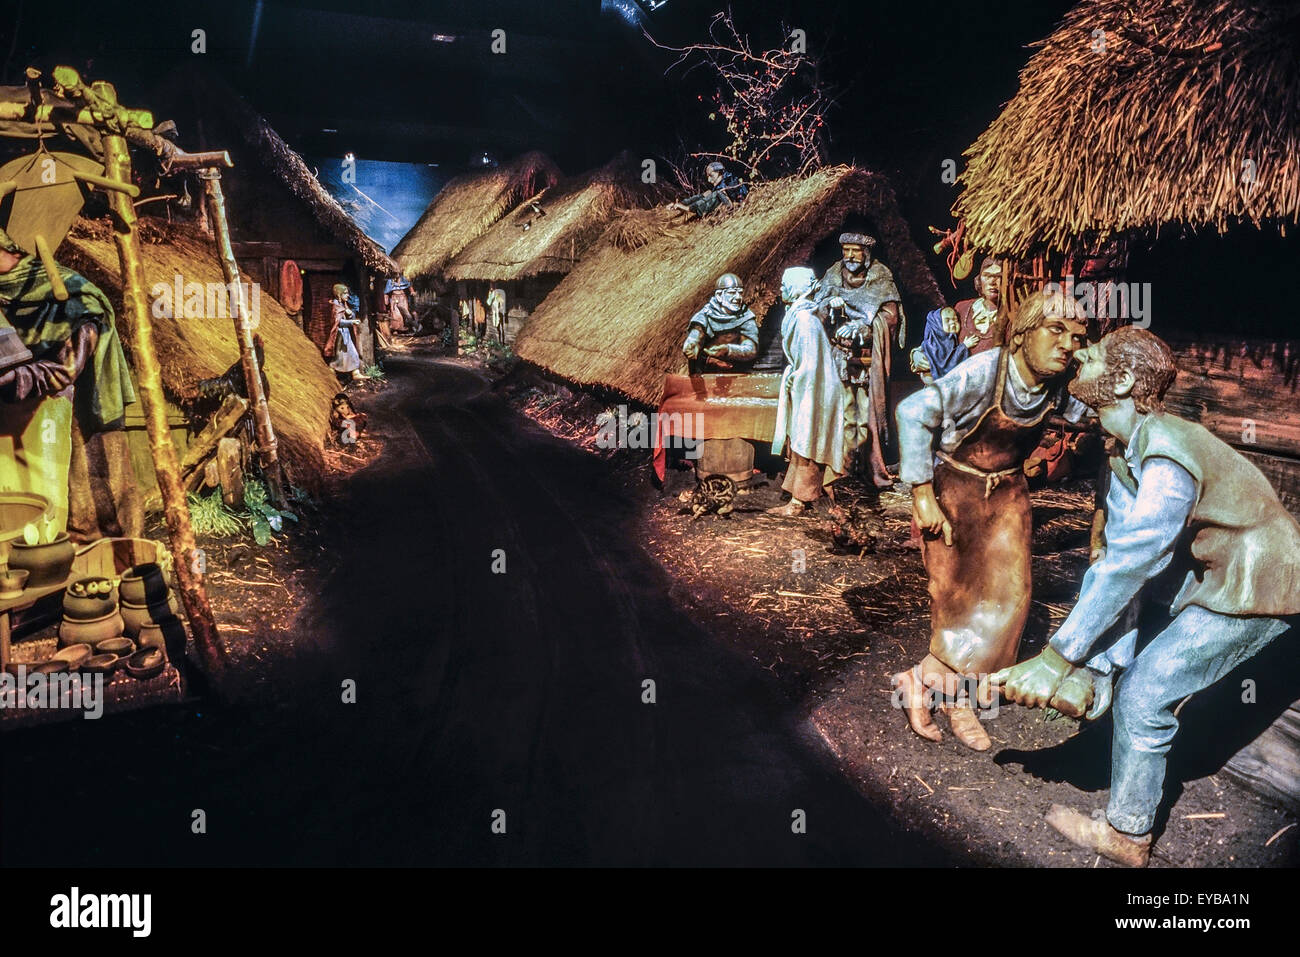 JORVIK Viking Centre. York. England. UK - Stock Image